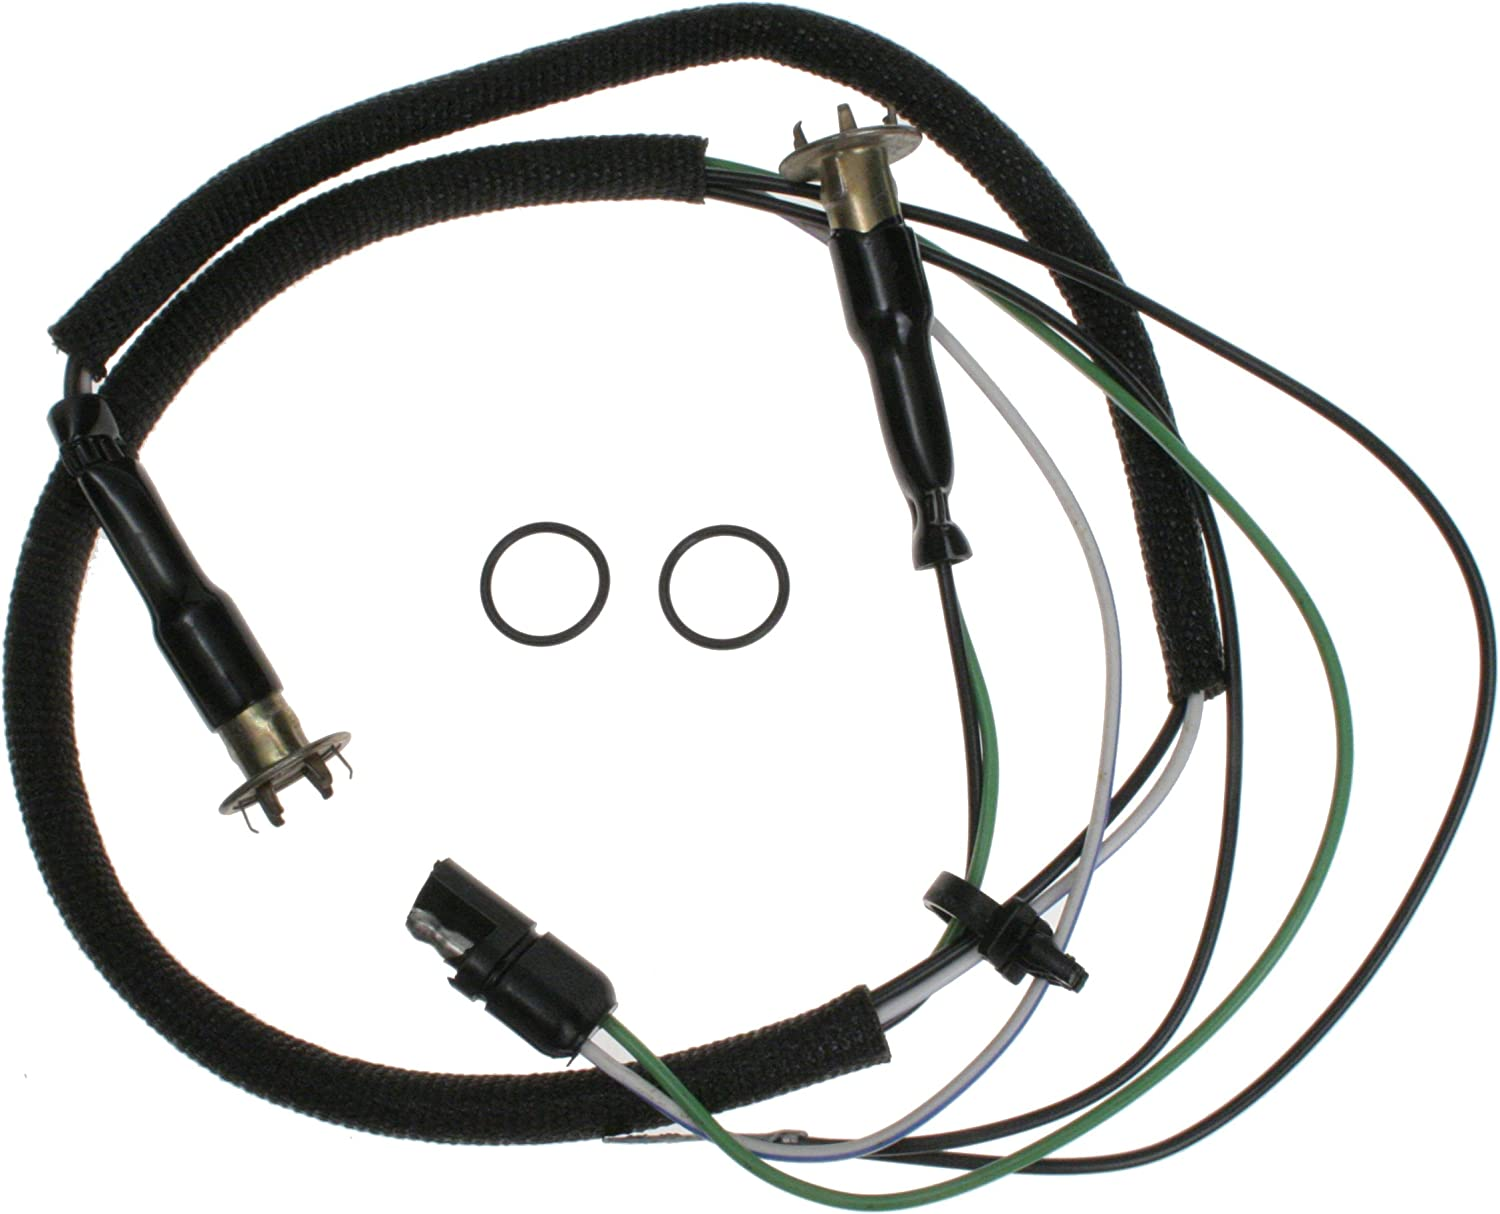 1969 mustang wiring harness amazon com mustang amp hood mounted turn signal wiring harness  hood mounted turn signal wiring harness